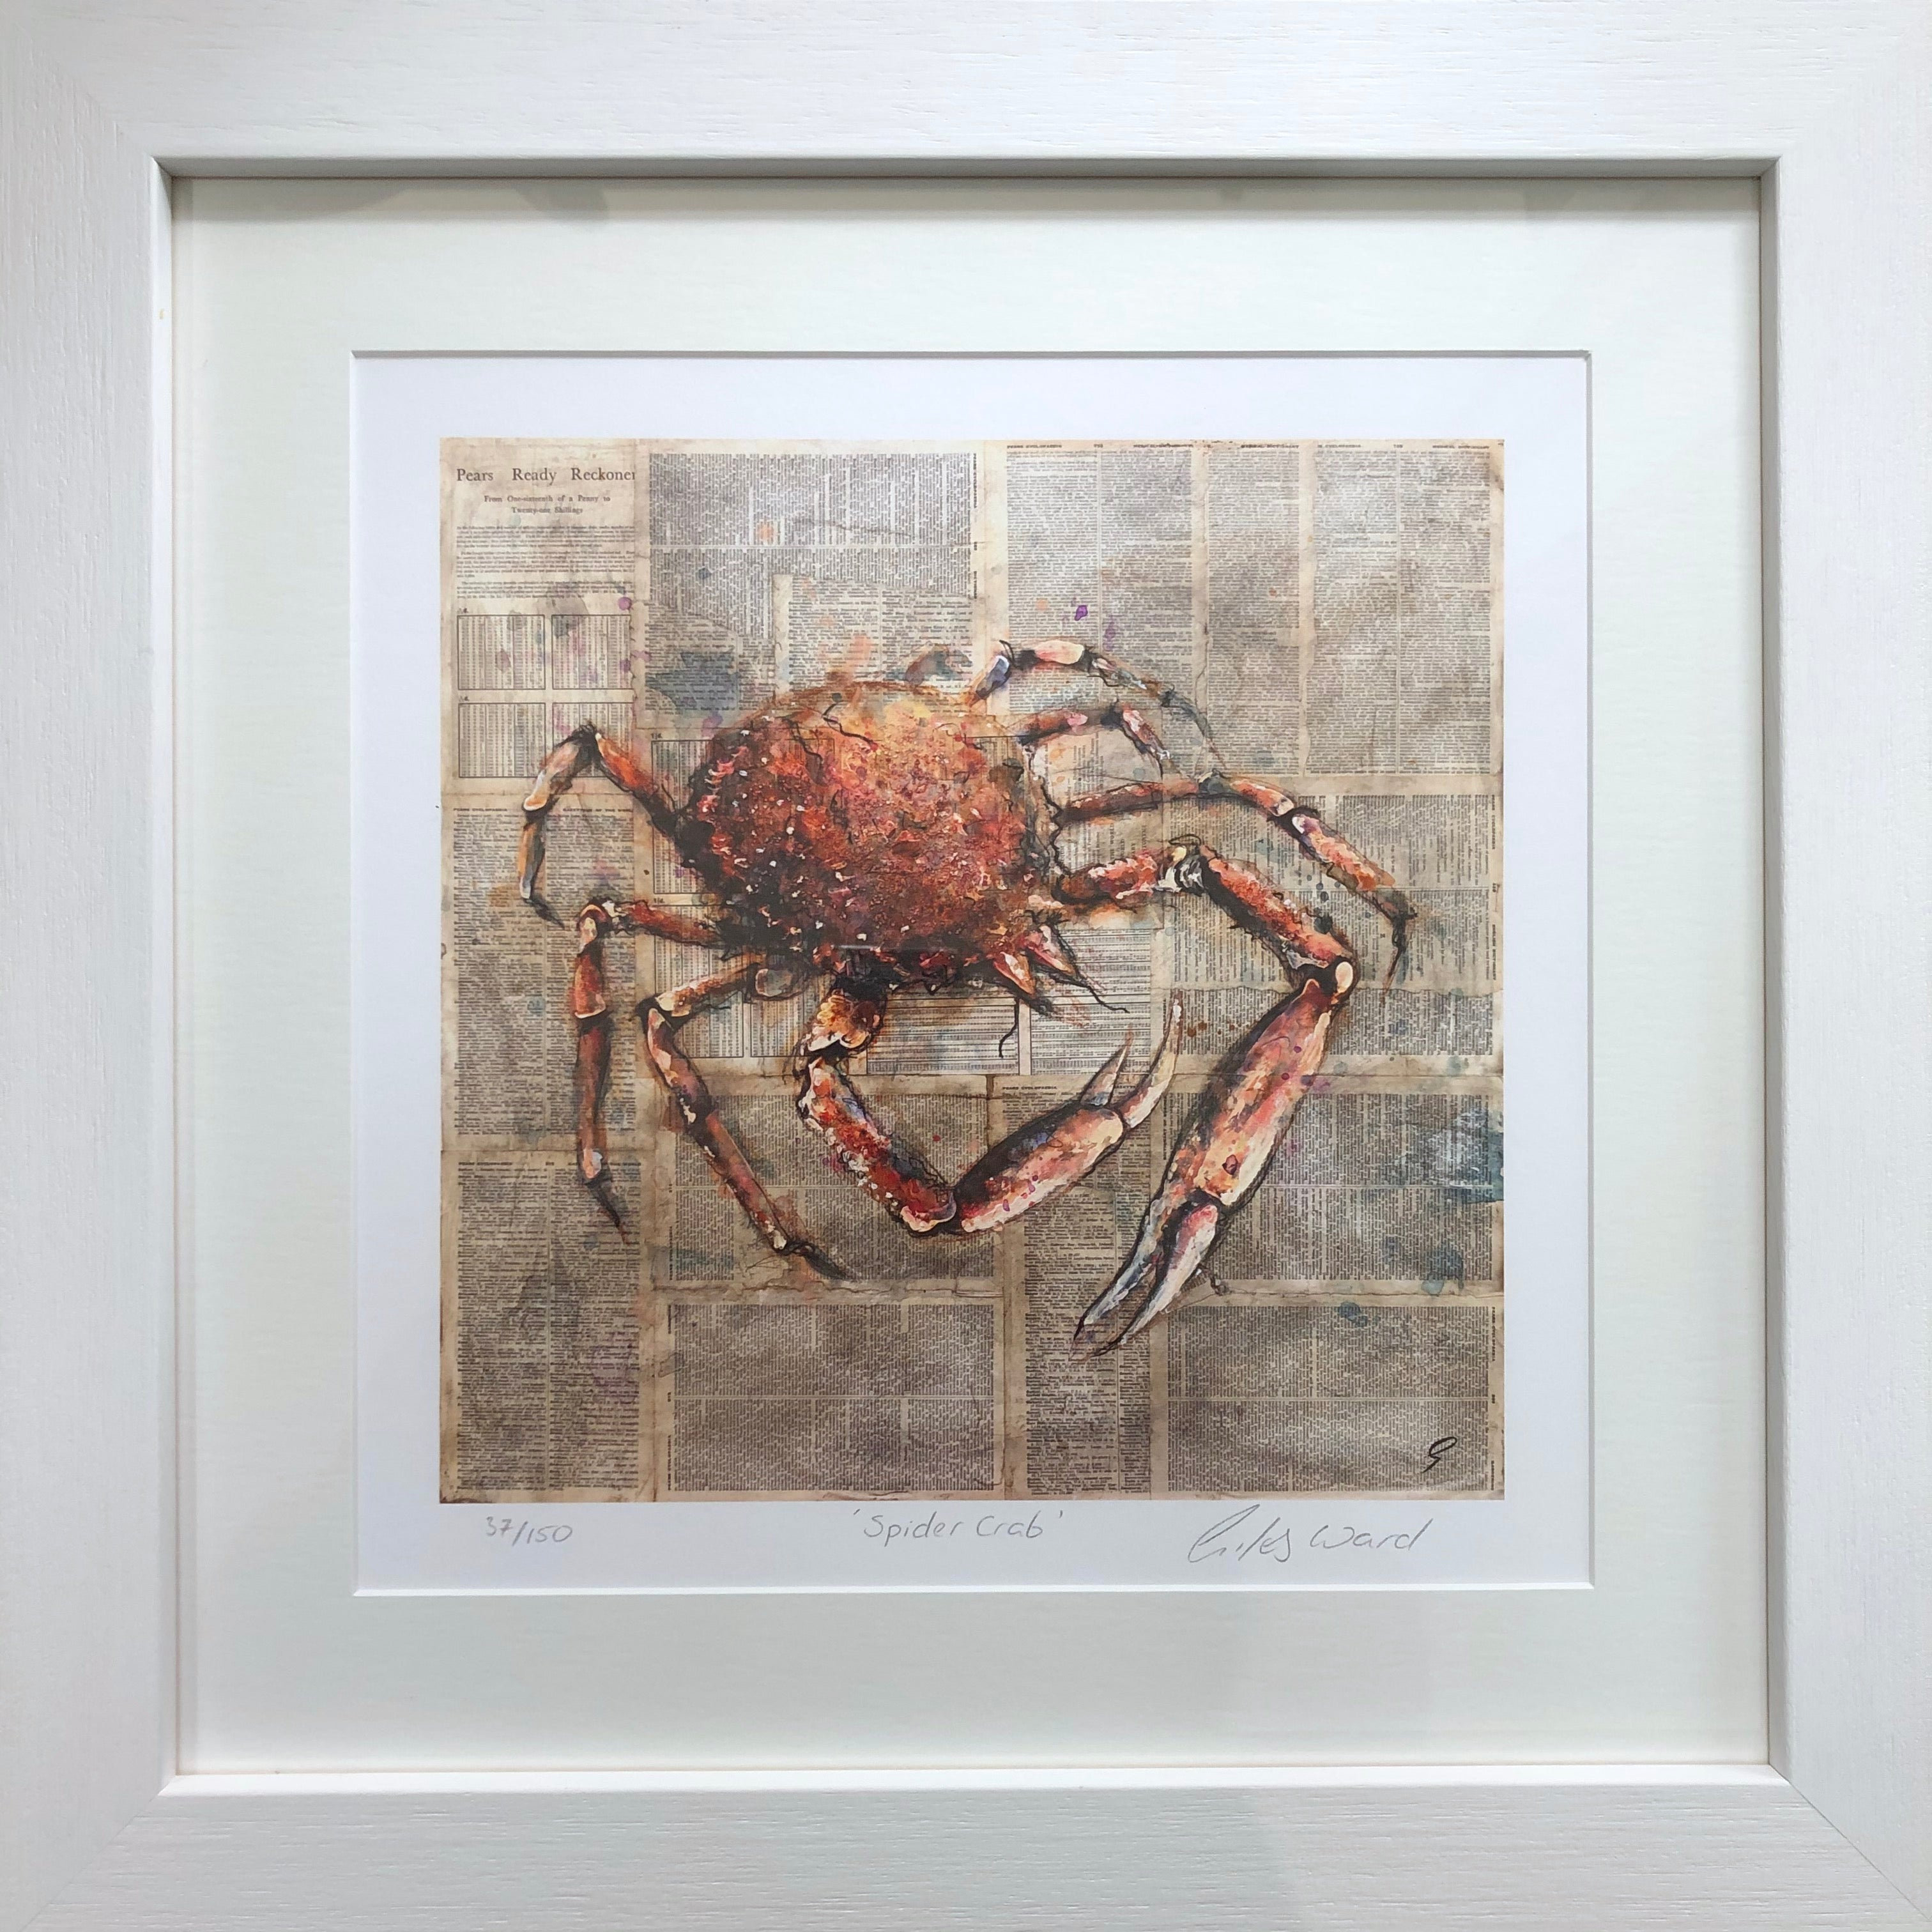 Spider Crab by Giles Ward